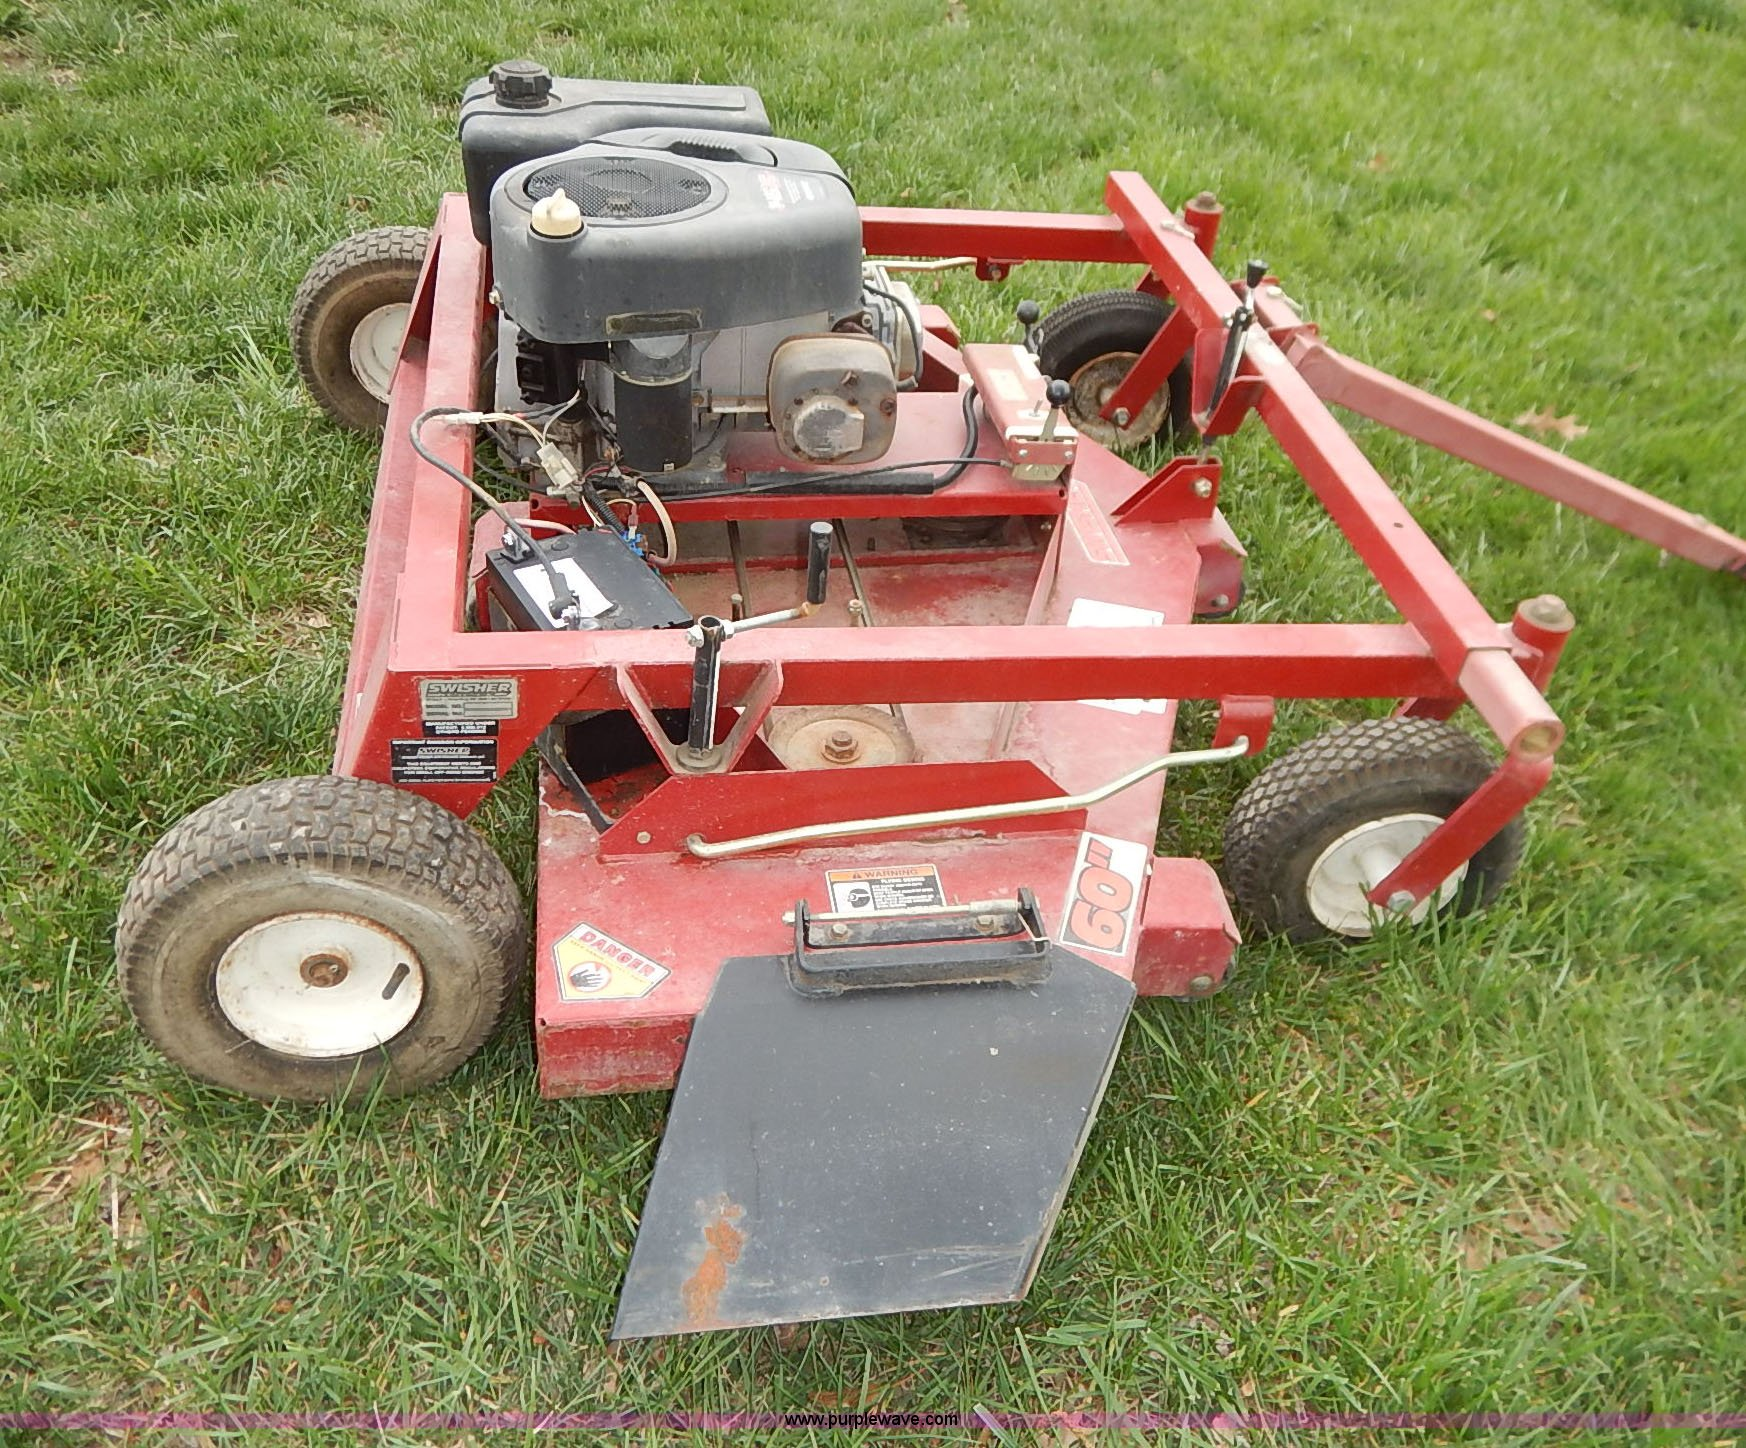 Swisher pull behind lawn mower   Item K7410   SOLD! April 29